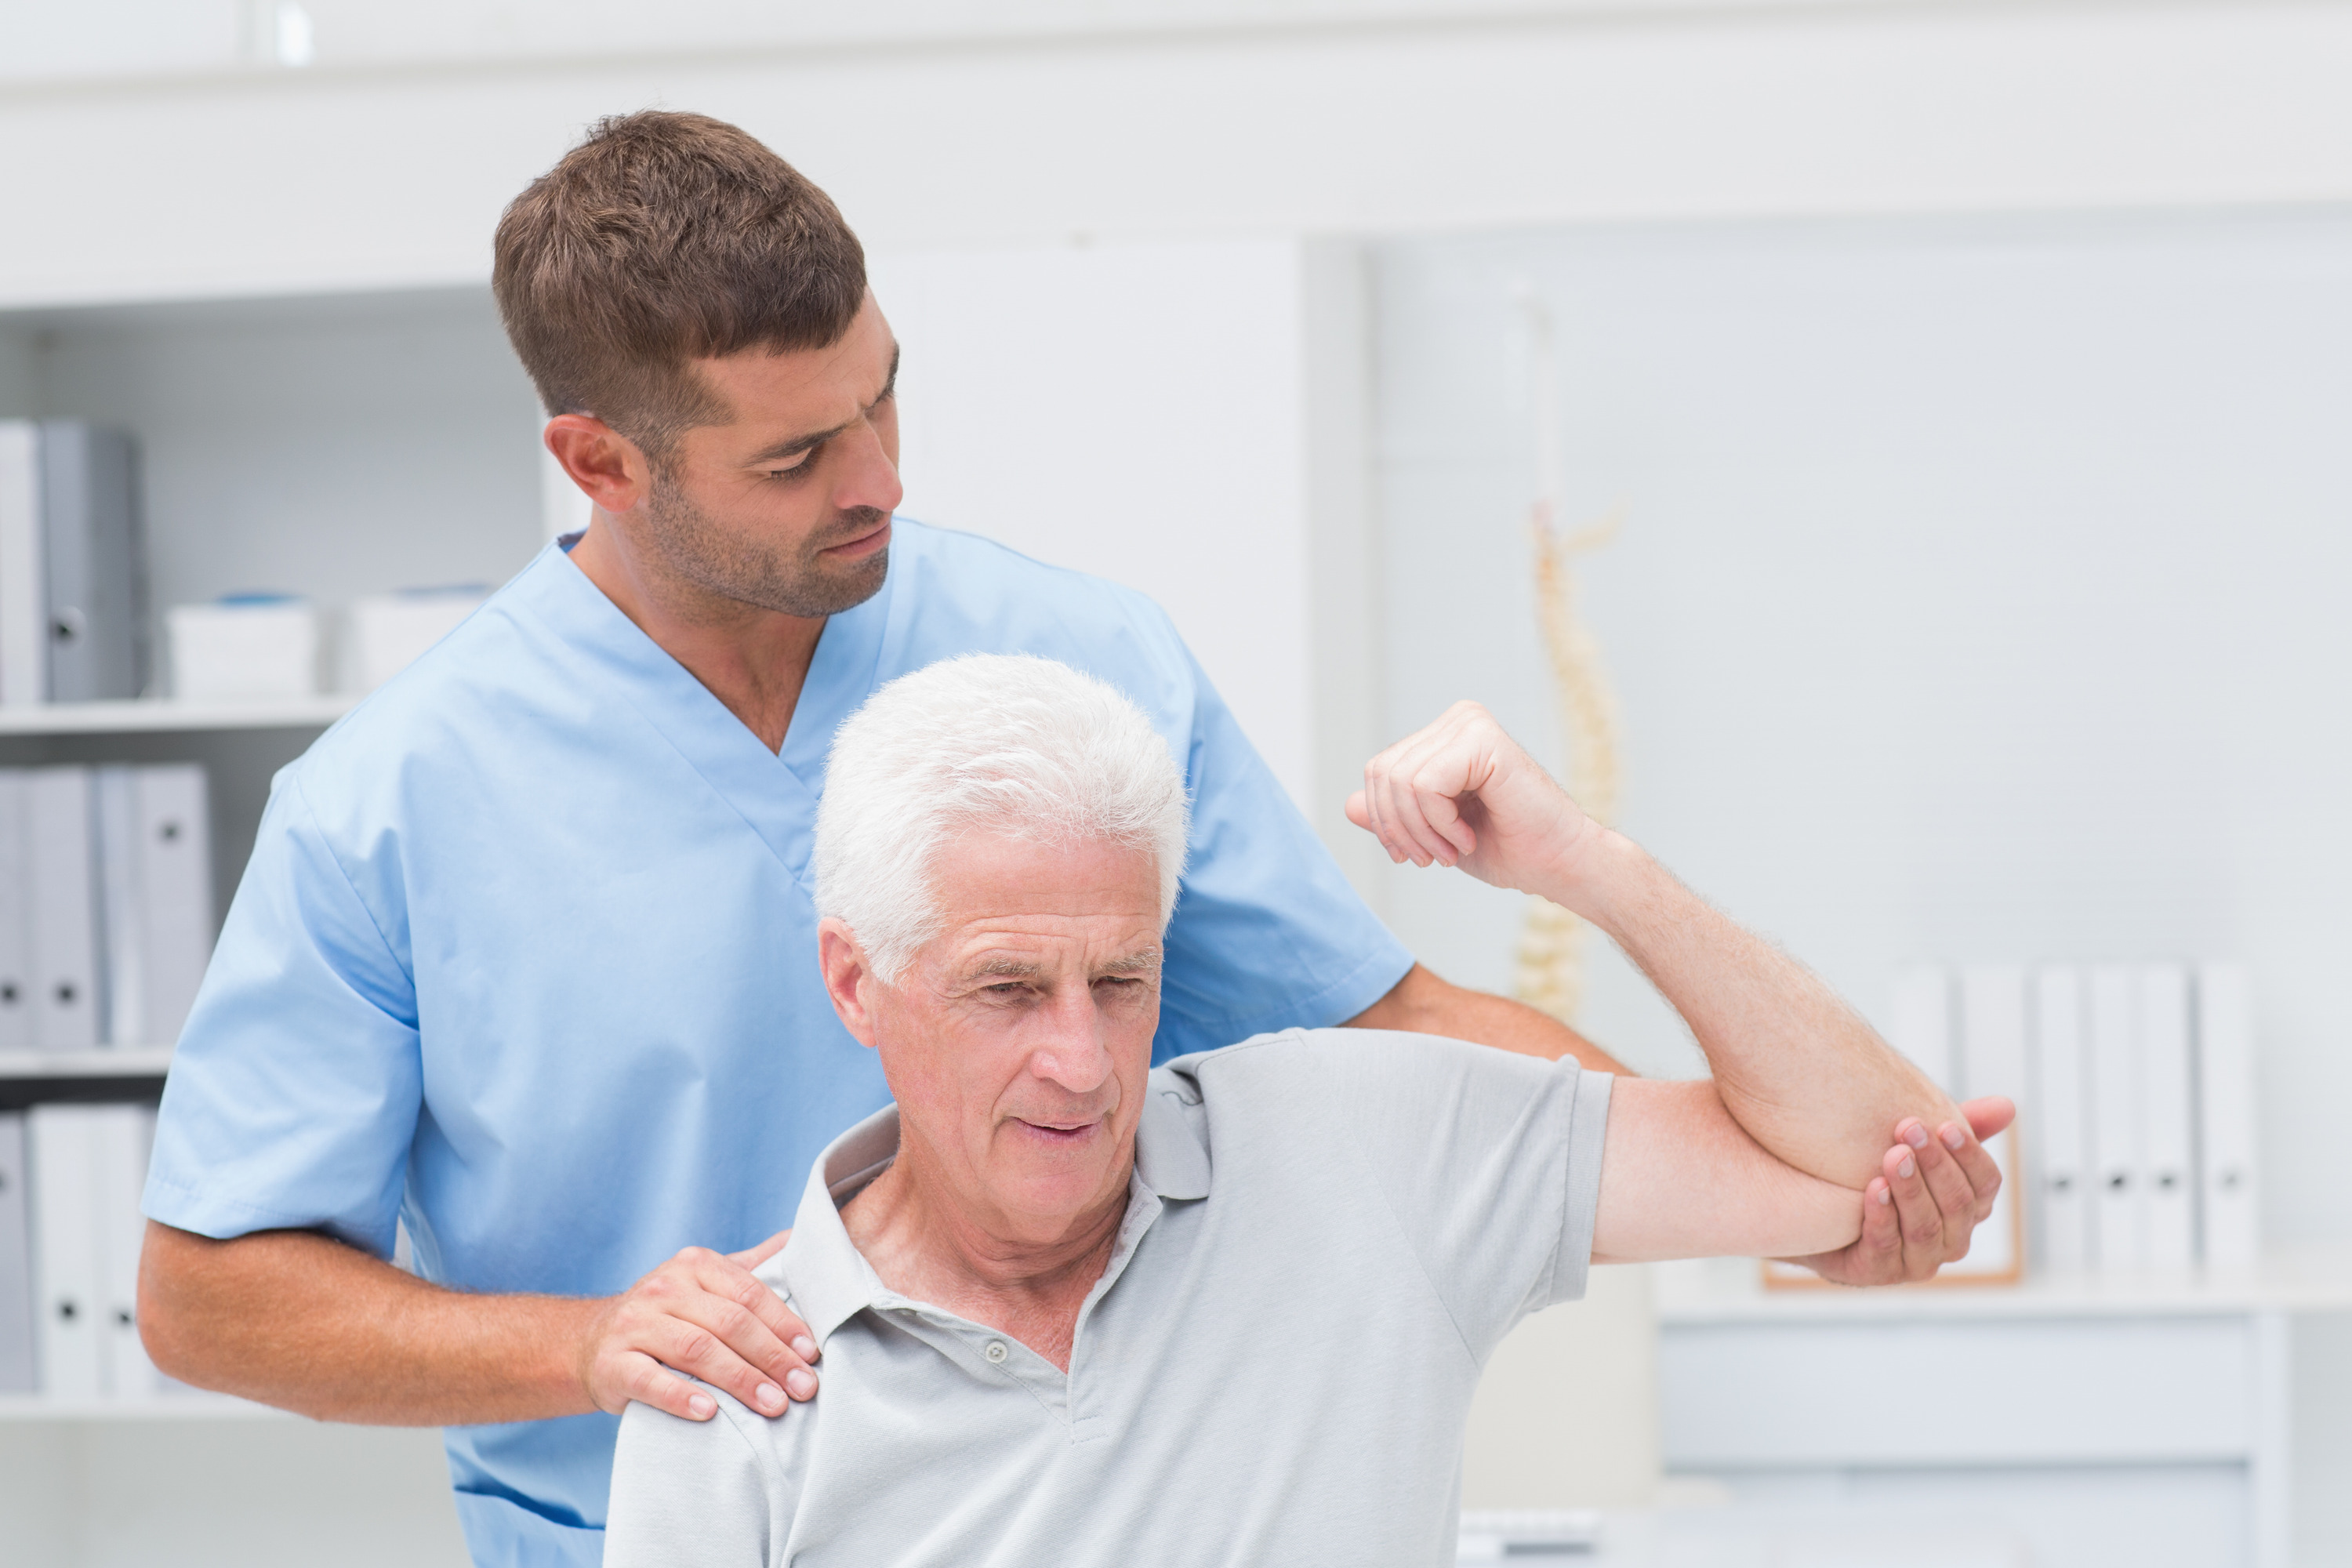 All Doctors of Physical Therapy in California